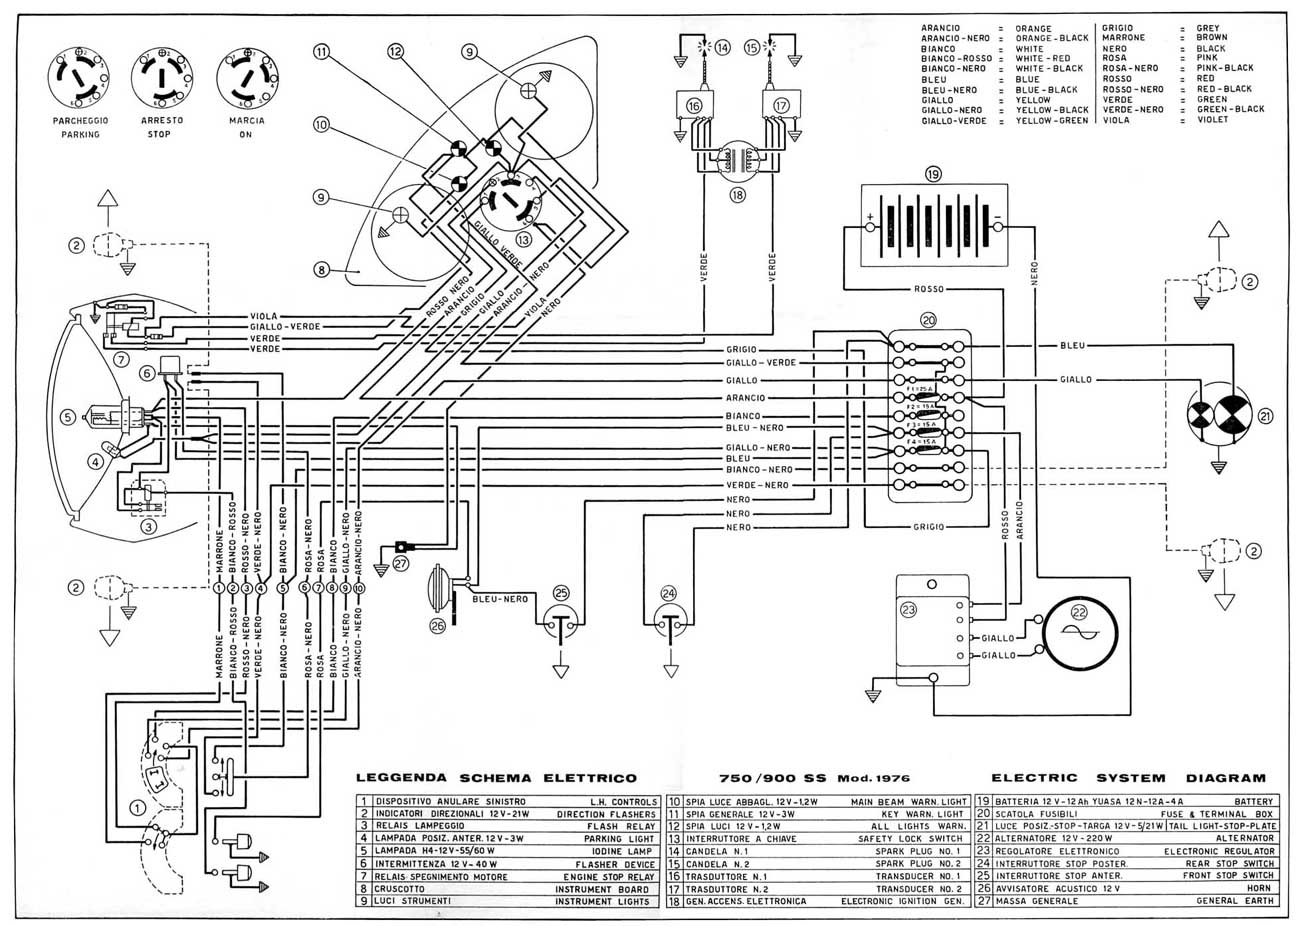 76_750900ss_wiring ducati 860 gt wiring diagram ducati wiring diagrams instruction ducati monster 796 fuse box at reclaimingppi.co